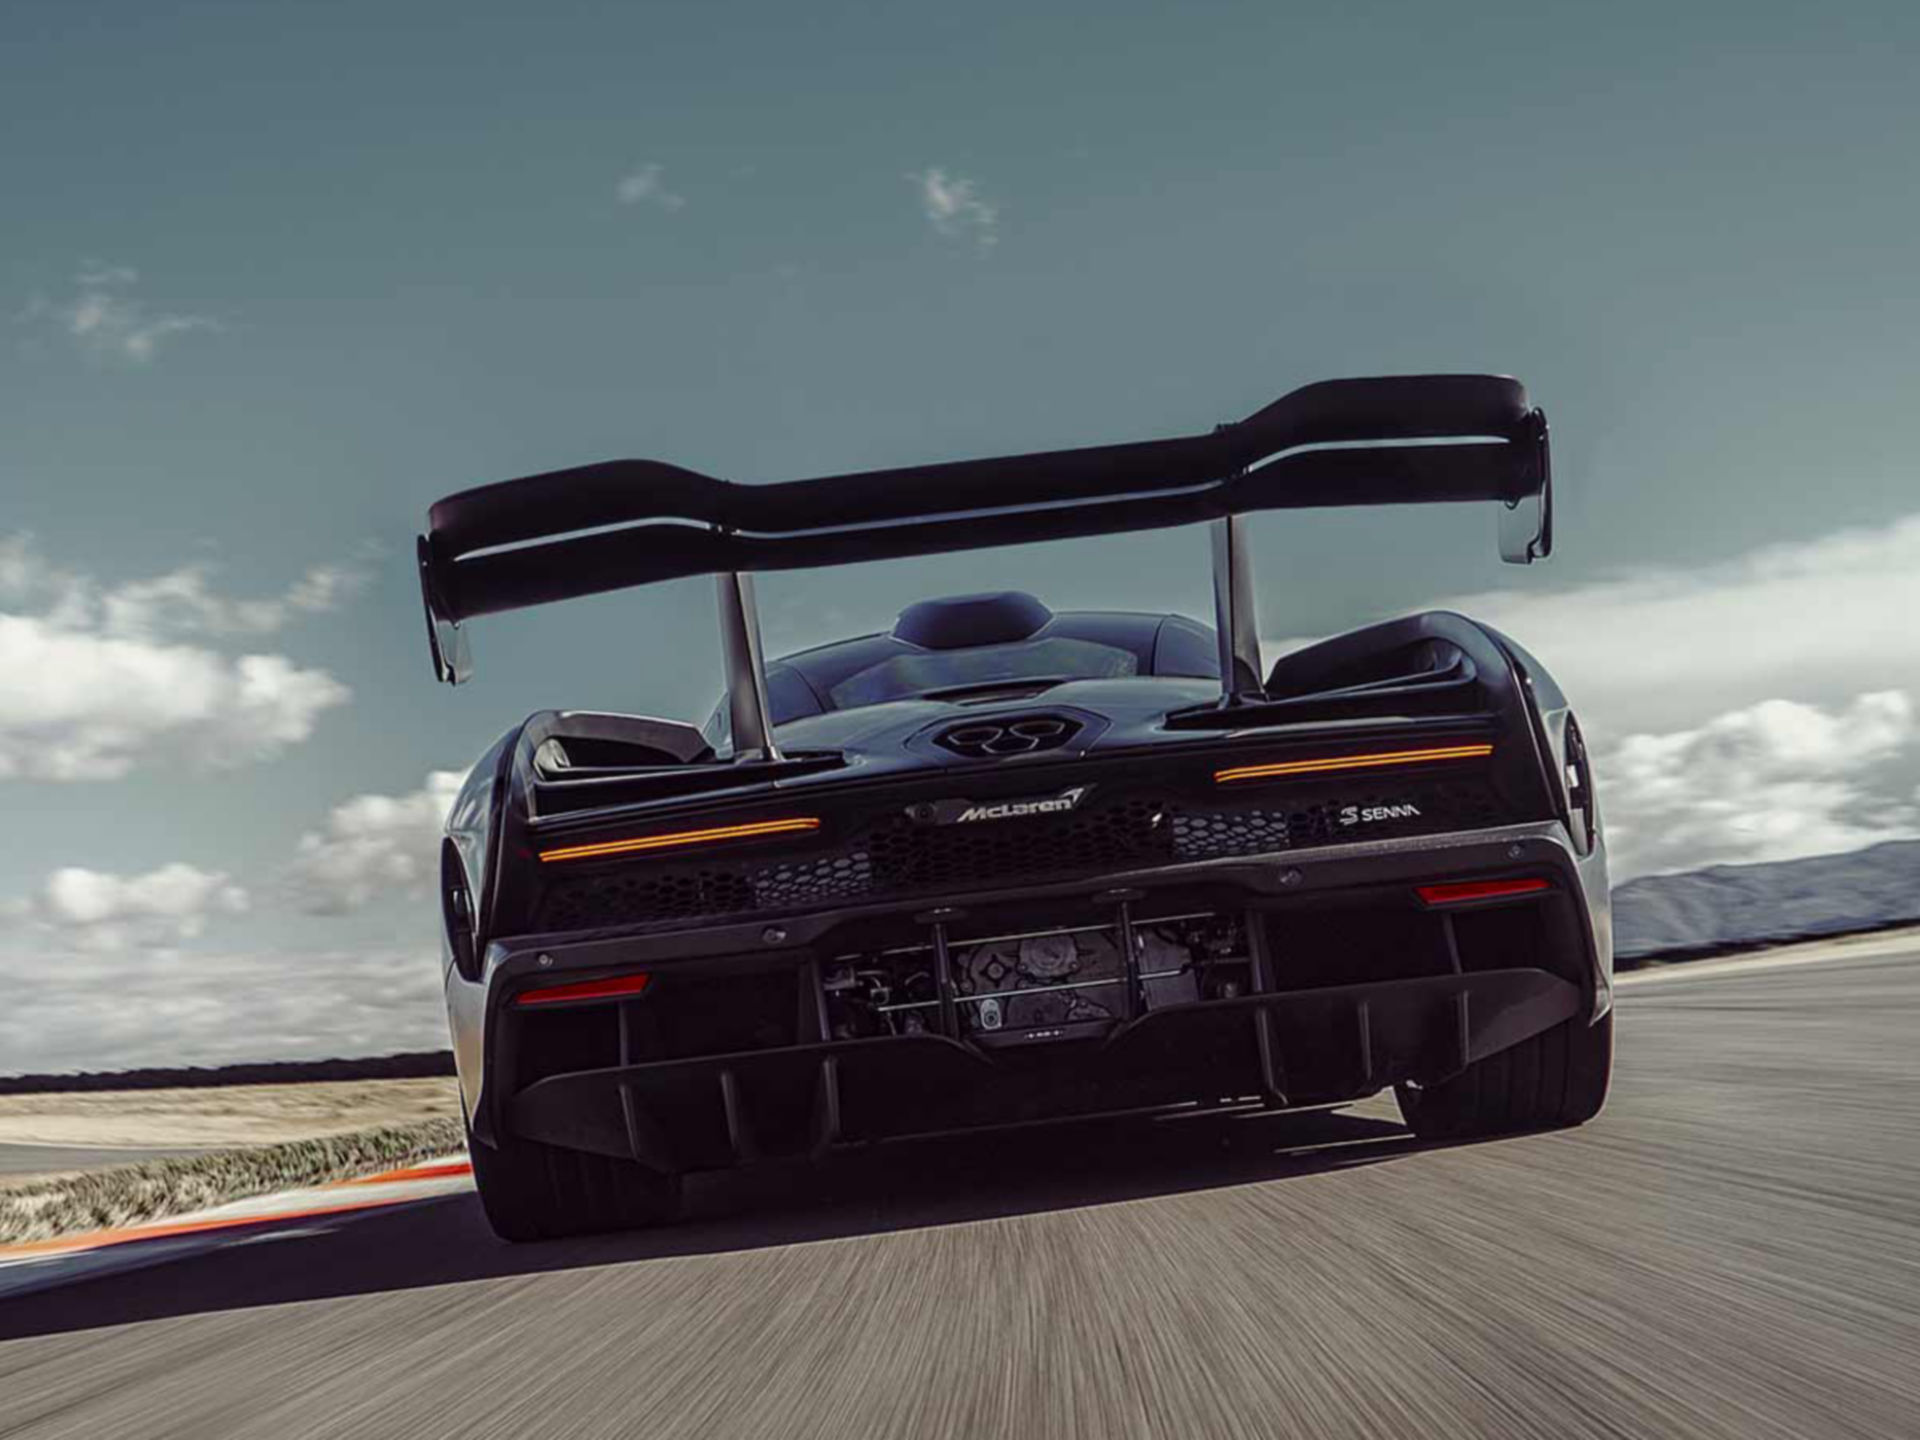 Rear view of black McLaren Senna being driven down track at high speed